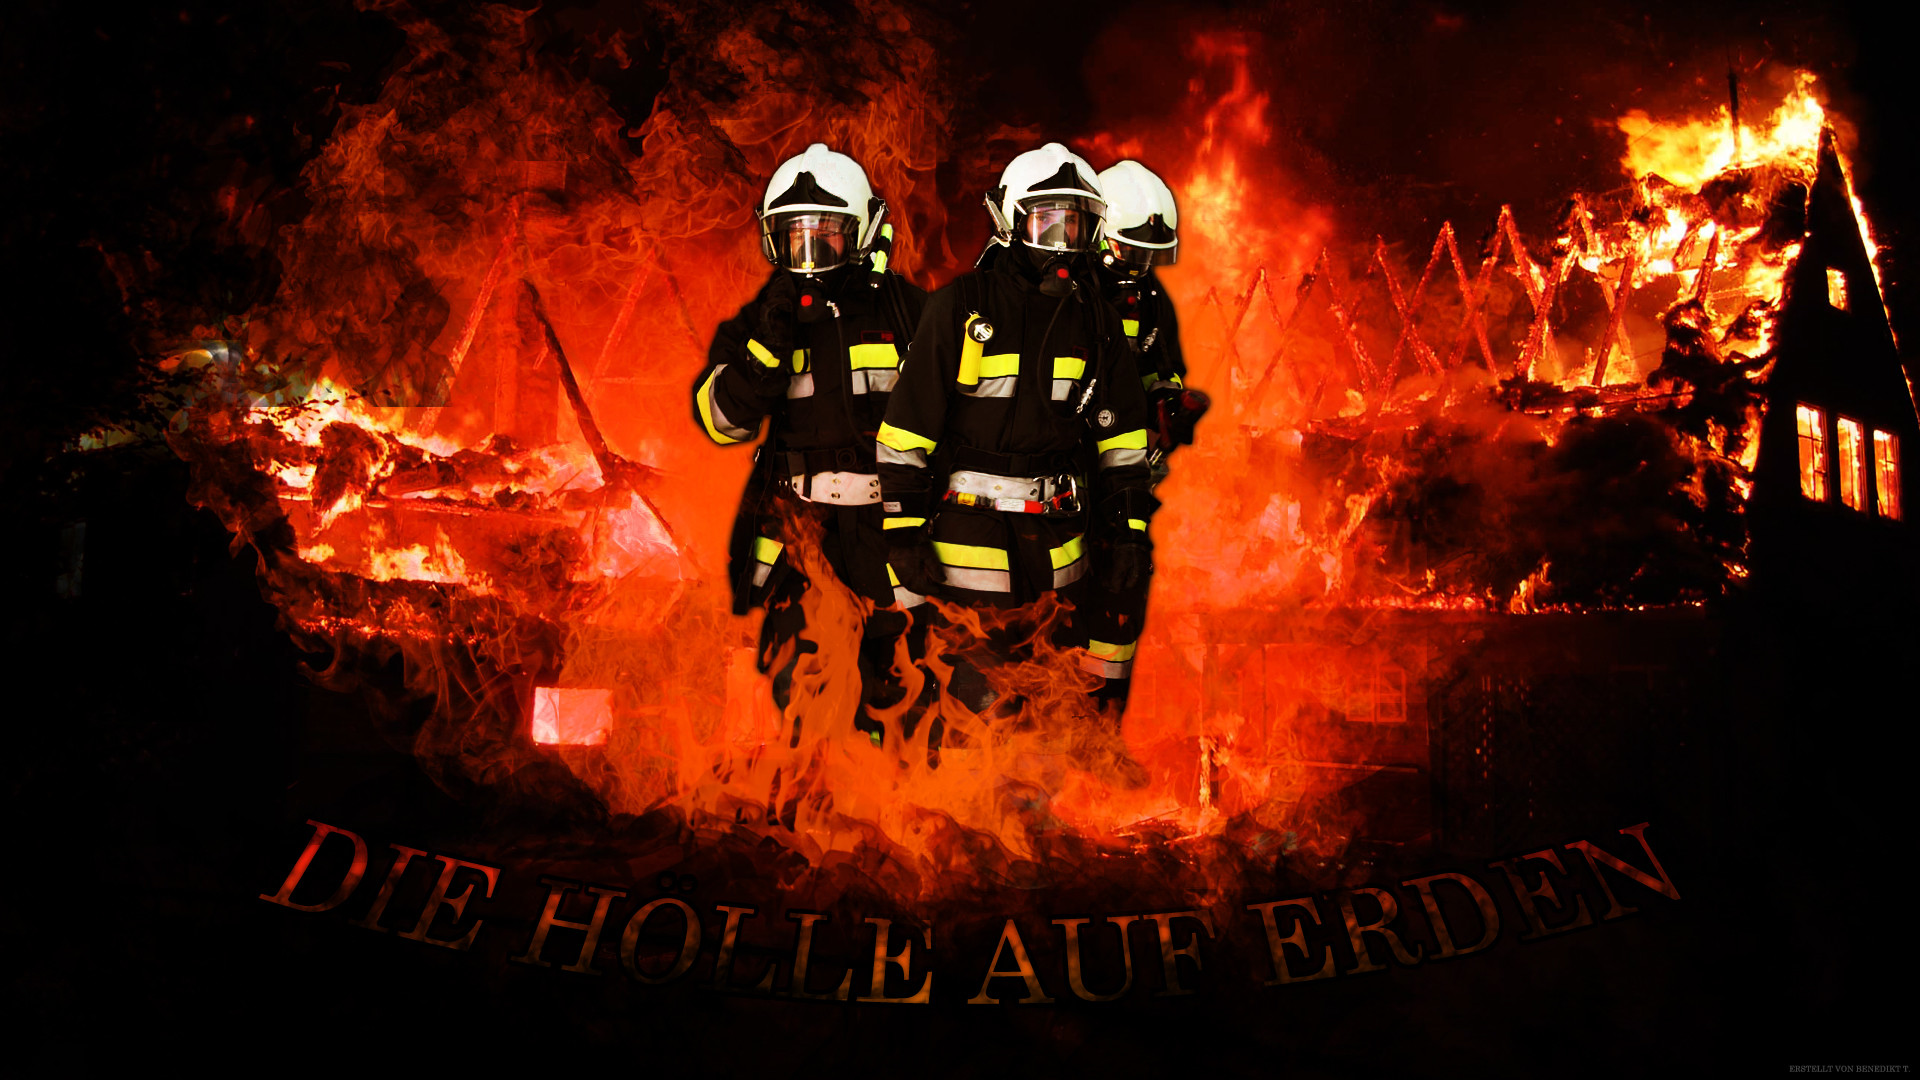 Firefighter Germany – Wallpaper (Feuerwehr) by DeNite93 on DeviantArt